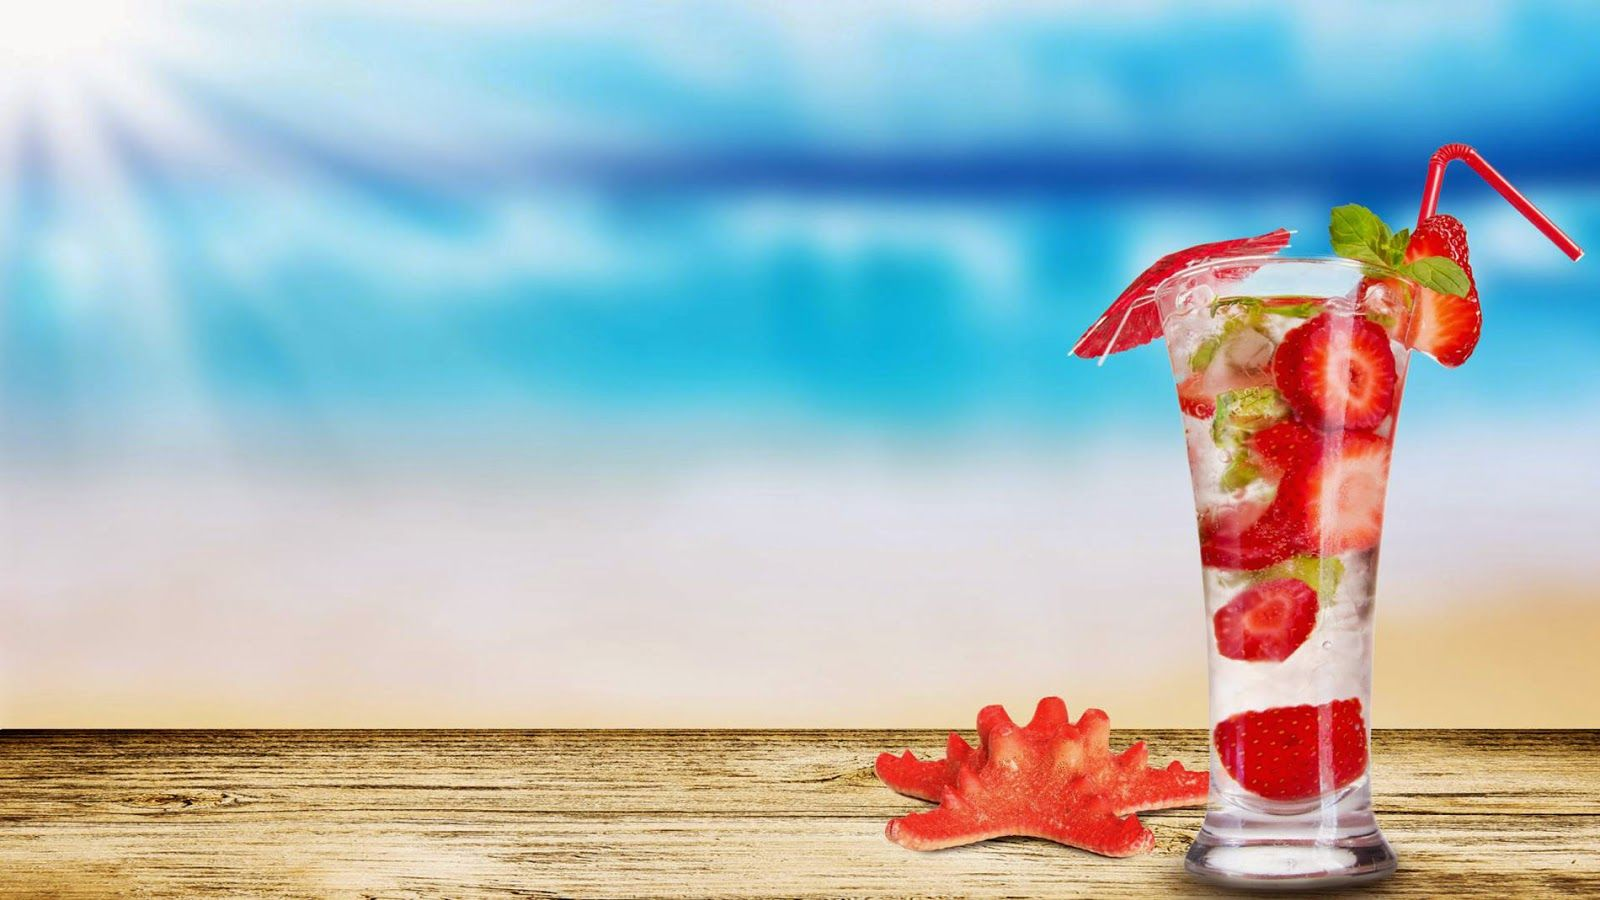 Strawberry Mojito Summer Beautiful  Amazing Hd Wallpapers 100% High Definition HD and High Quality Most HQ Picture, Image, Wallpapers free download for Your Devise Version.....